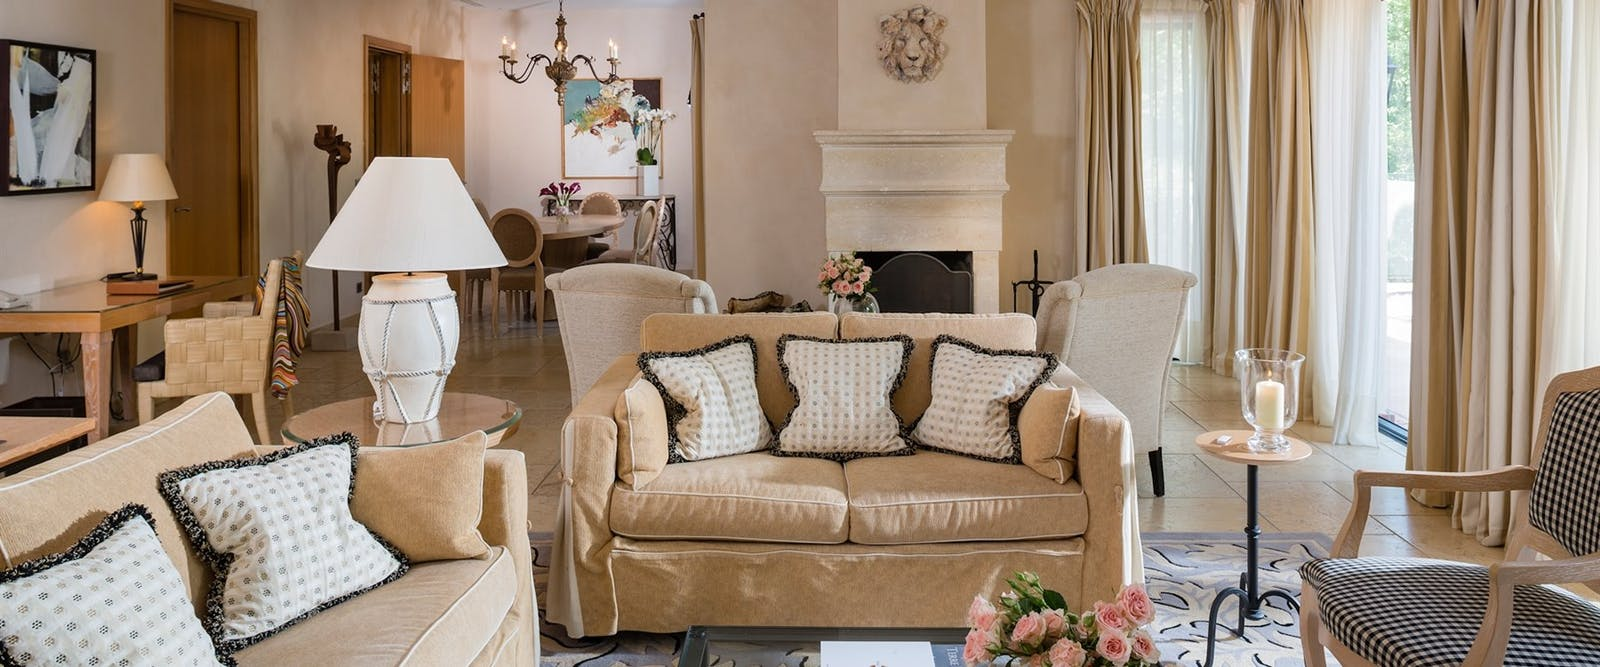 Suite at Terre Blanche Hotel Spa Golf Resort, Provence, France